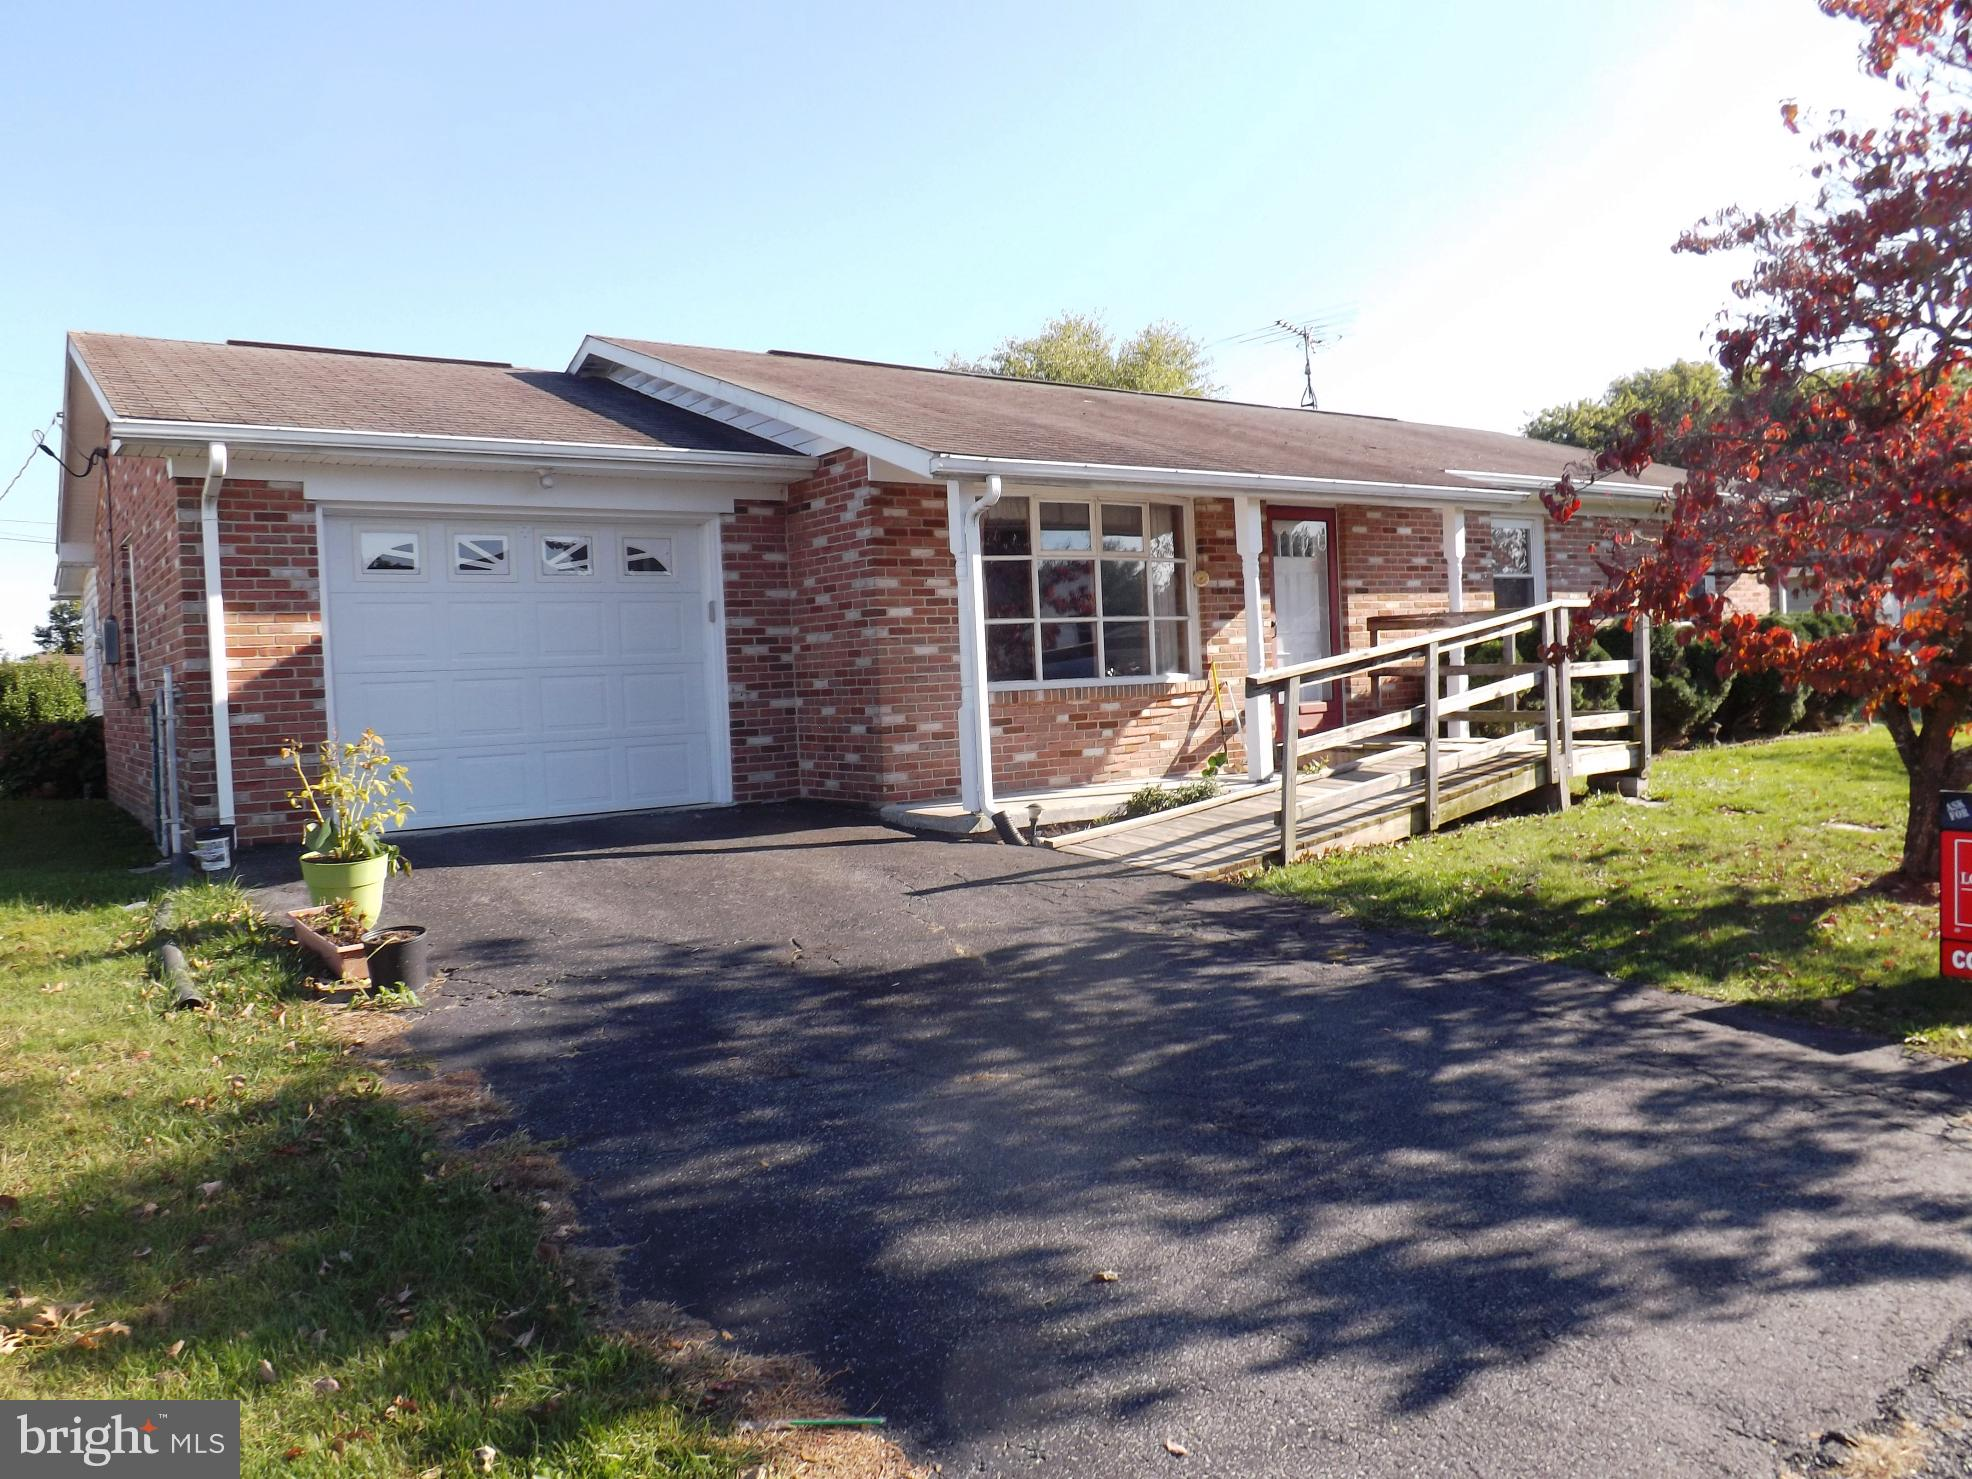 Nice Brick Rancher that is 3 bedroom 1 1/2 bath with full unfinished basement. Hardwood flooring in